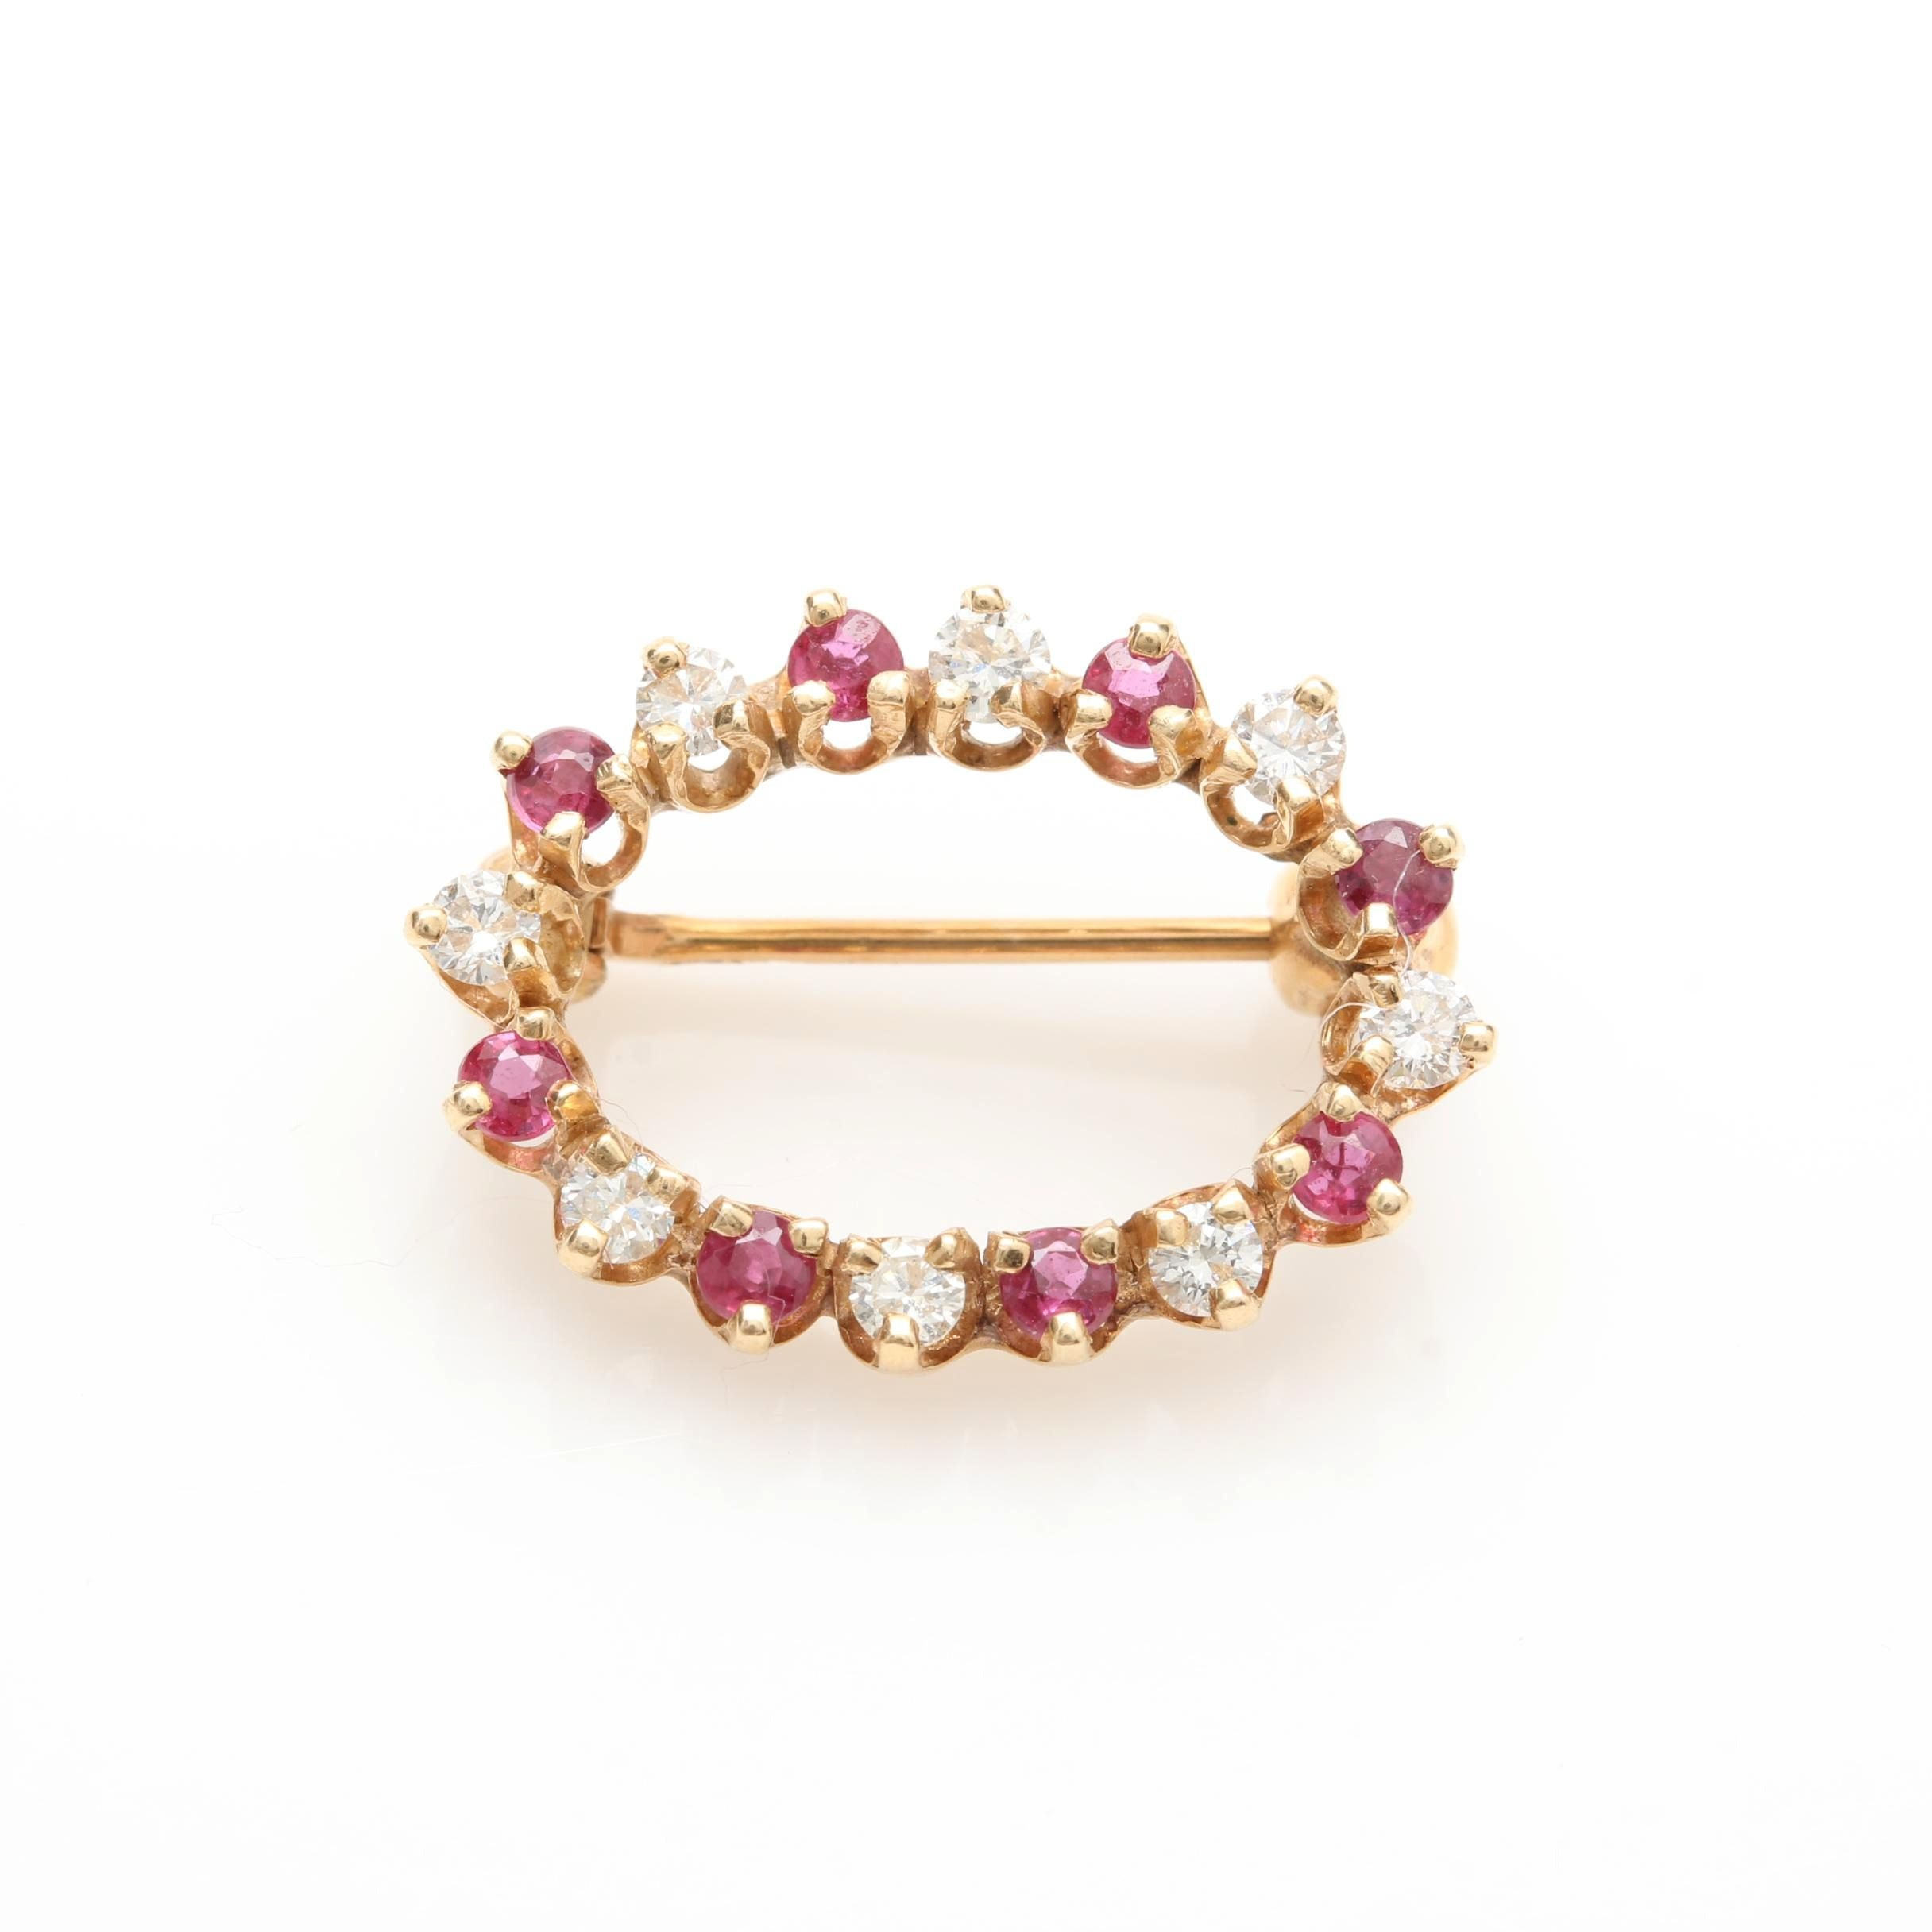 14K Yellow Gold Ruby and Diamond Brooch